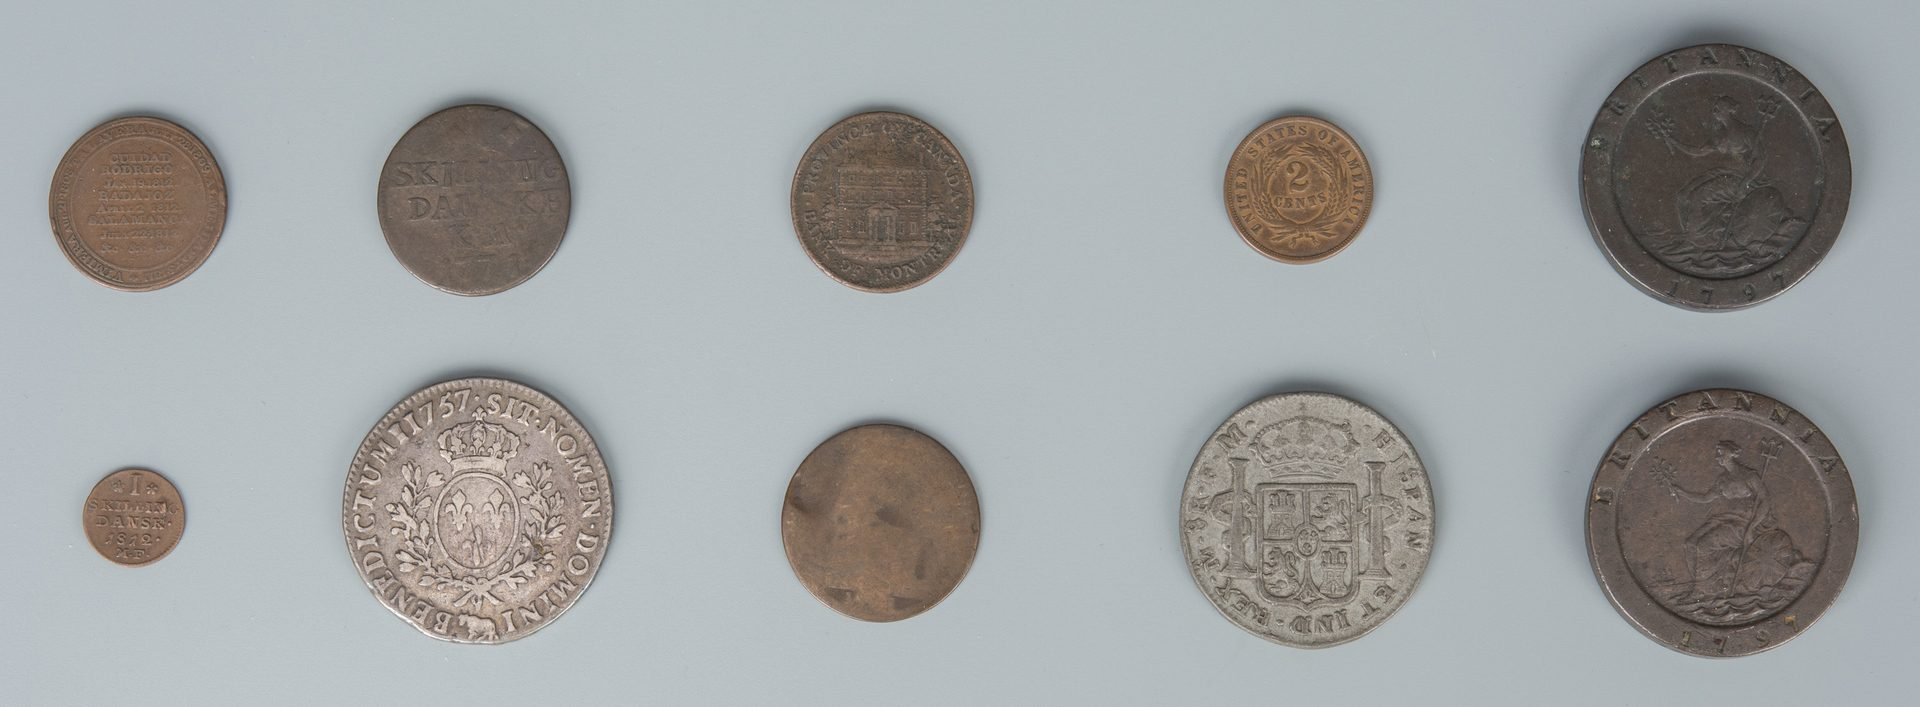 Lot 731: Grouping of American & International Coins, 19 total